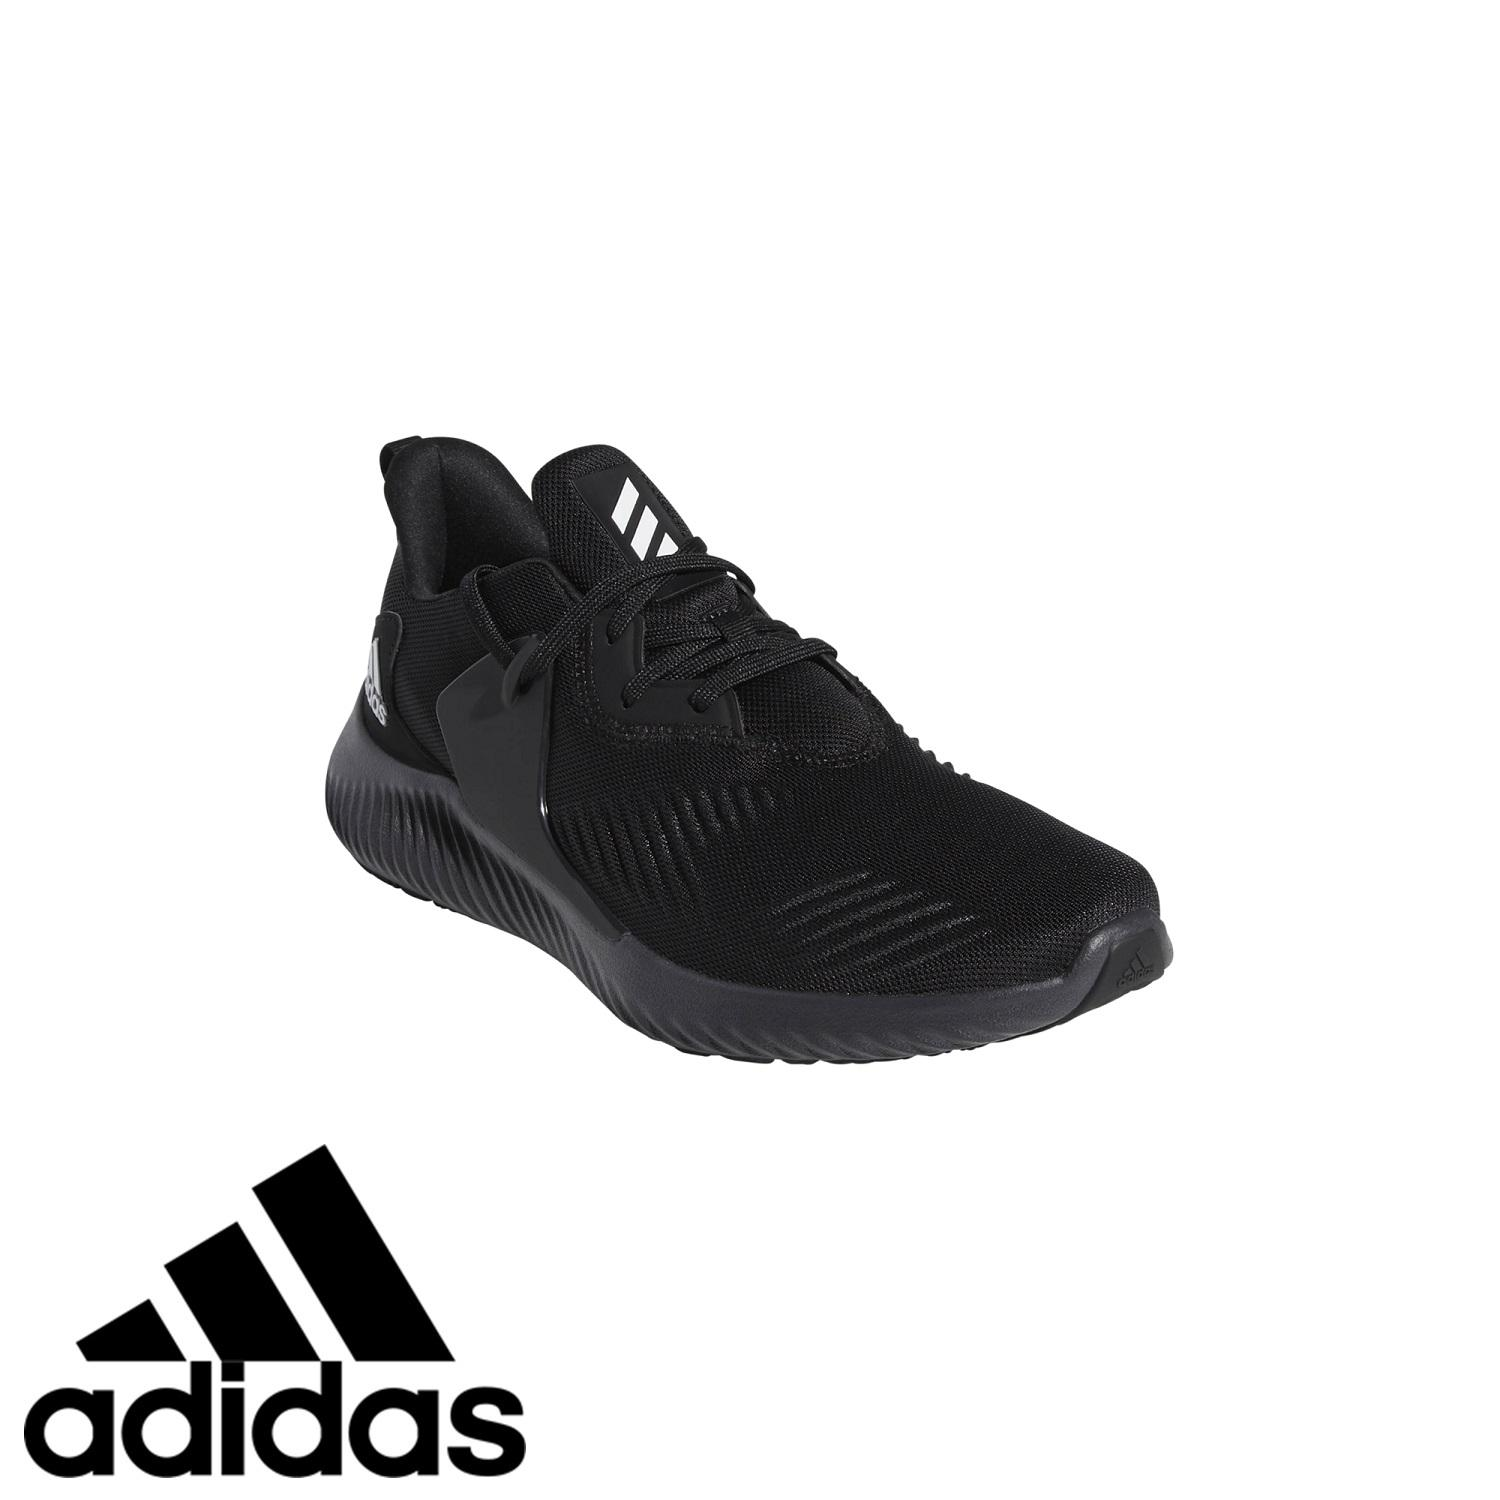 c56ade5cb4dfe Adidas Sports Shoes Philippines - Adidas Sports Clothing for sale ...